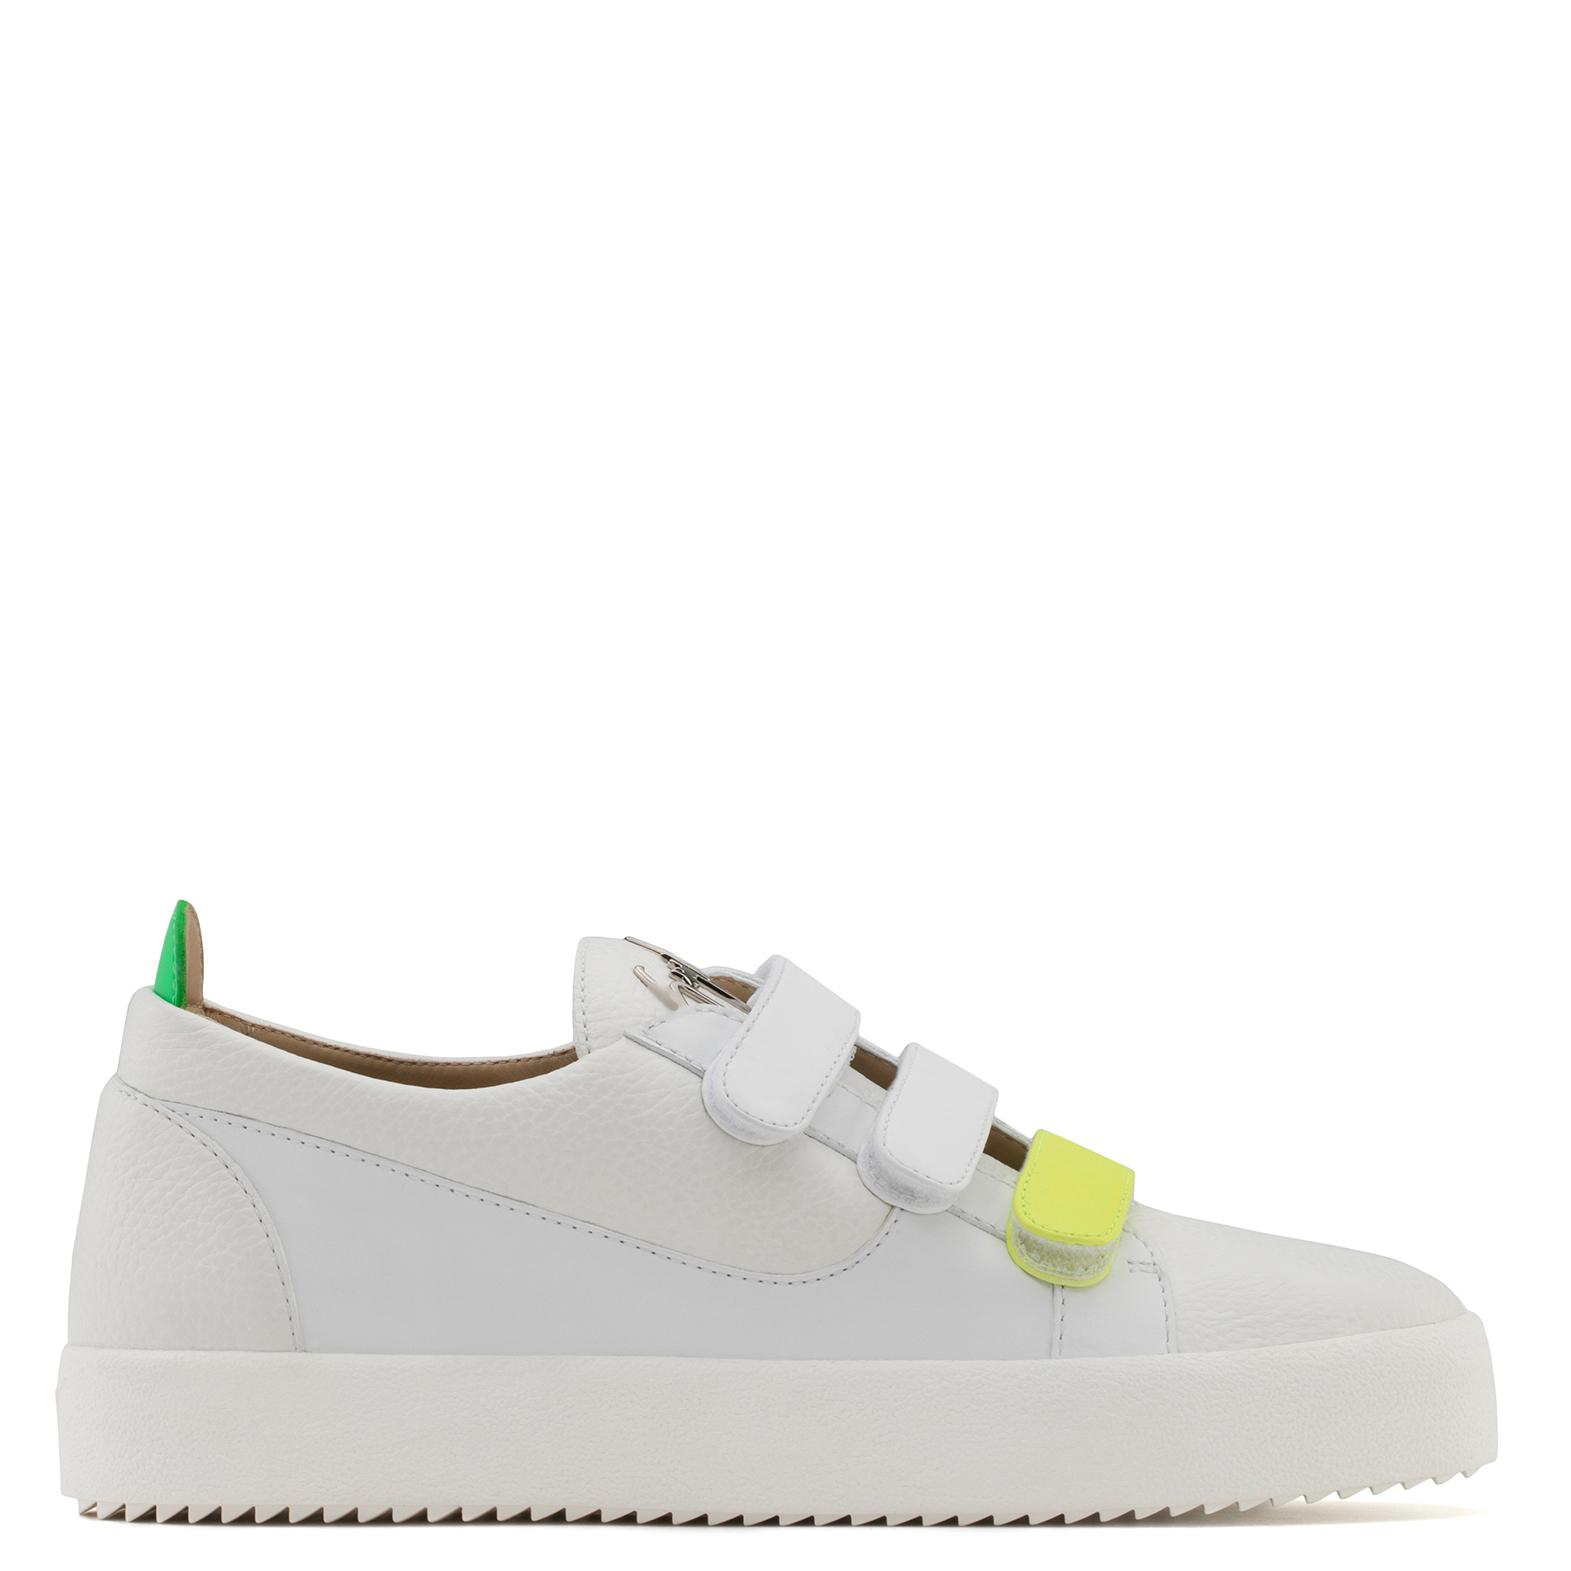 Giuseppe Zanotti Calfskin leather low-top sneaker with three straps JODY 5e45fN1oN